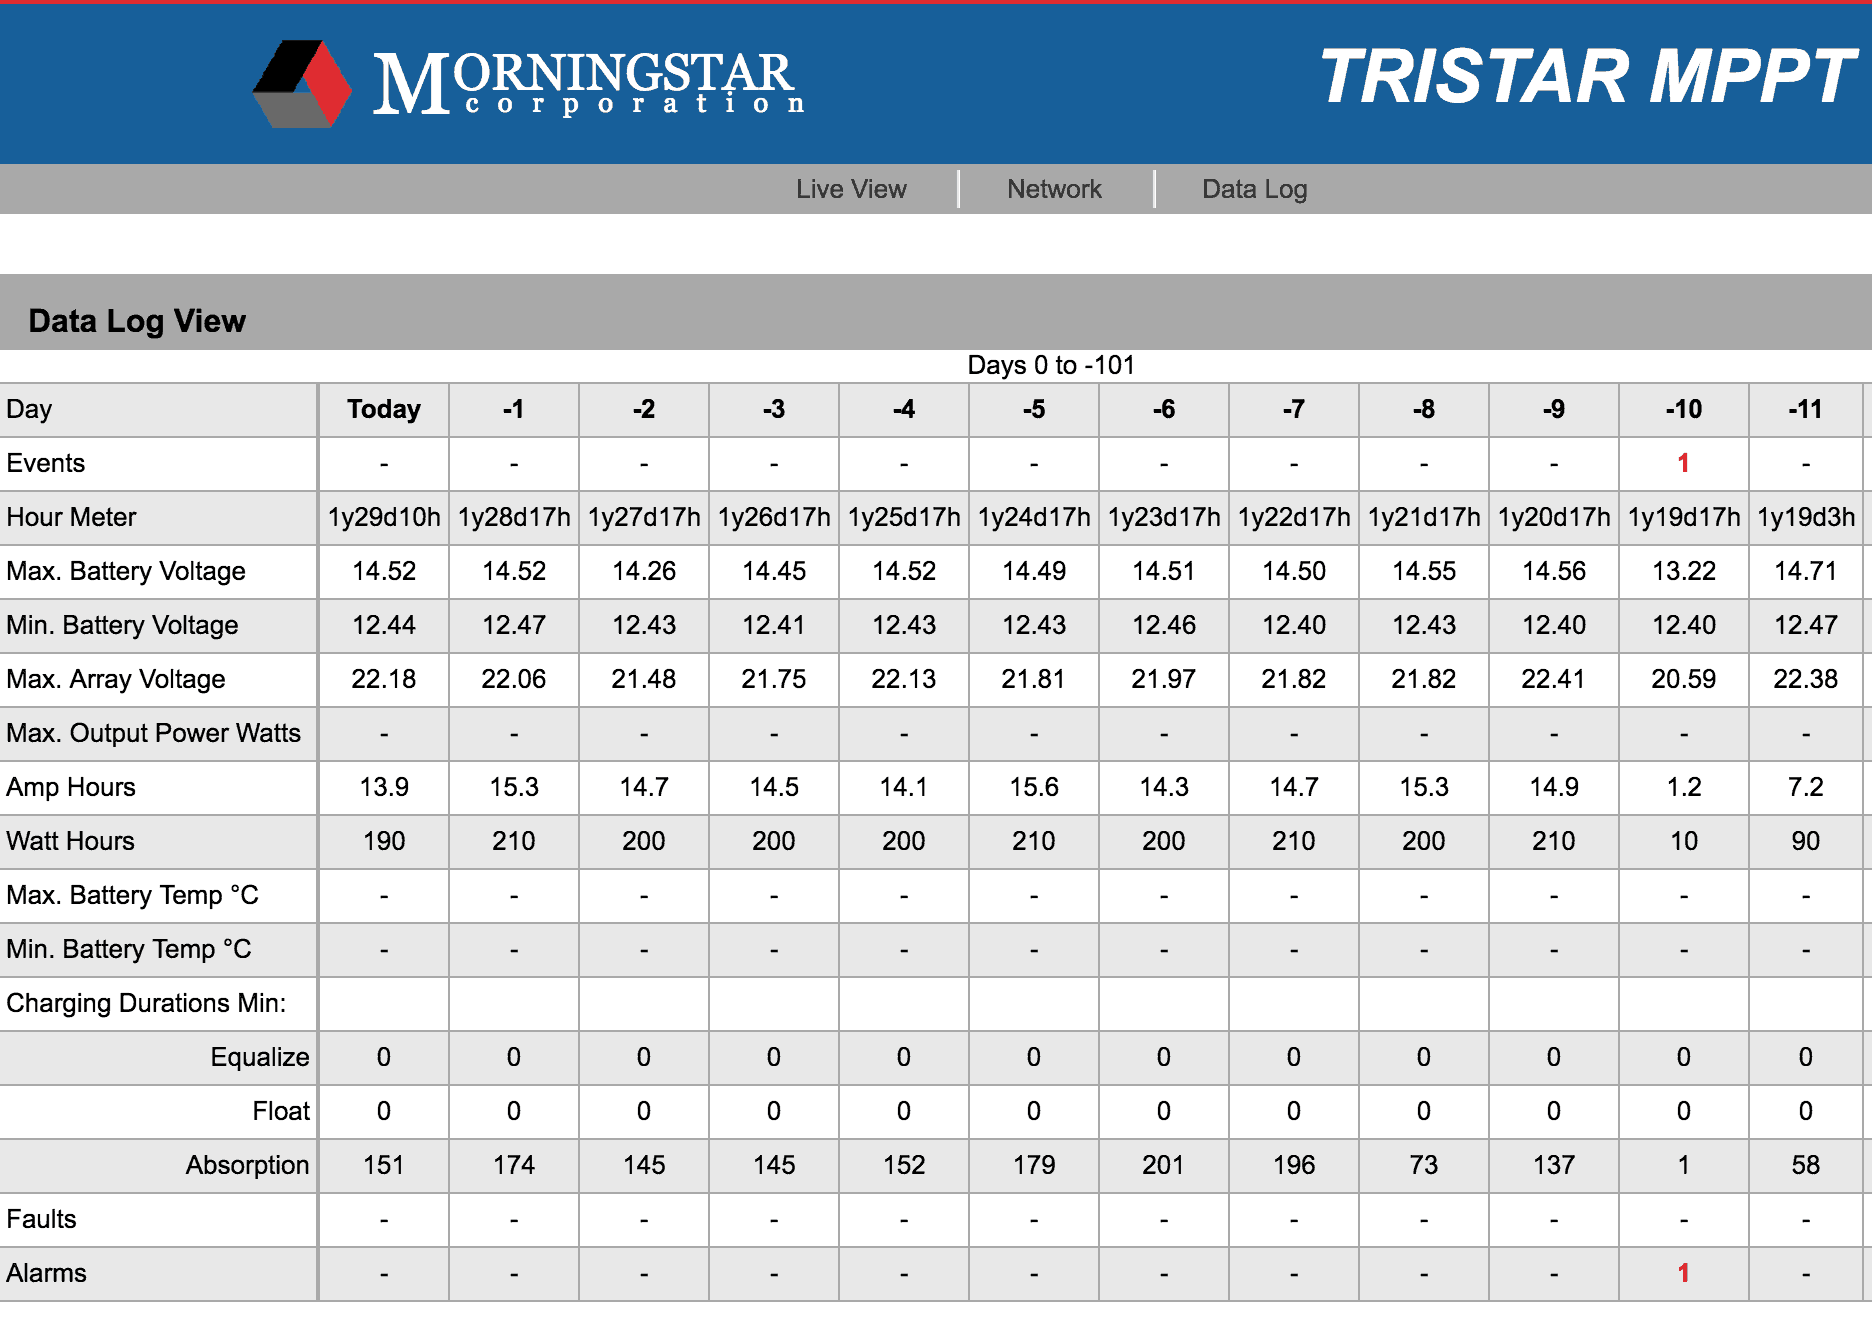 MorningStar TriStar data log